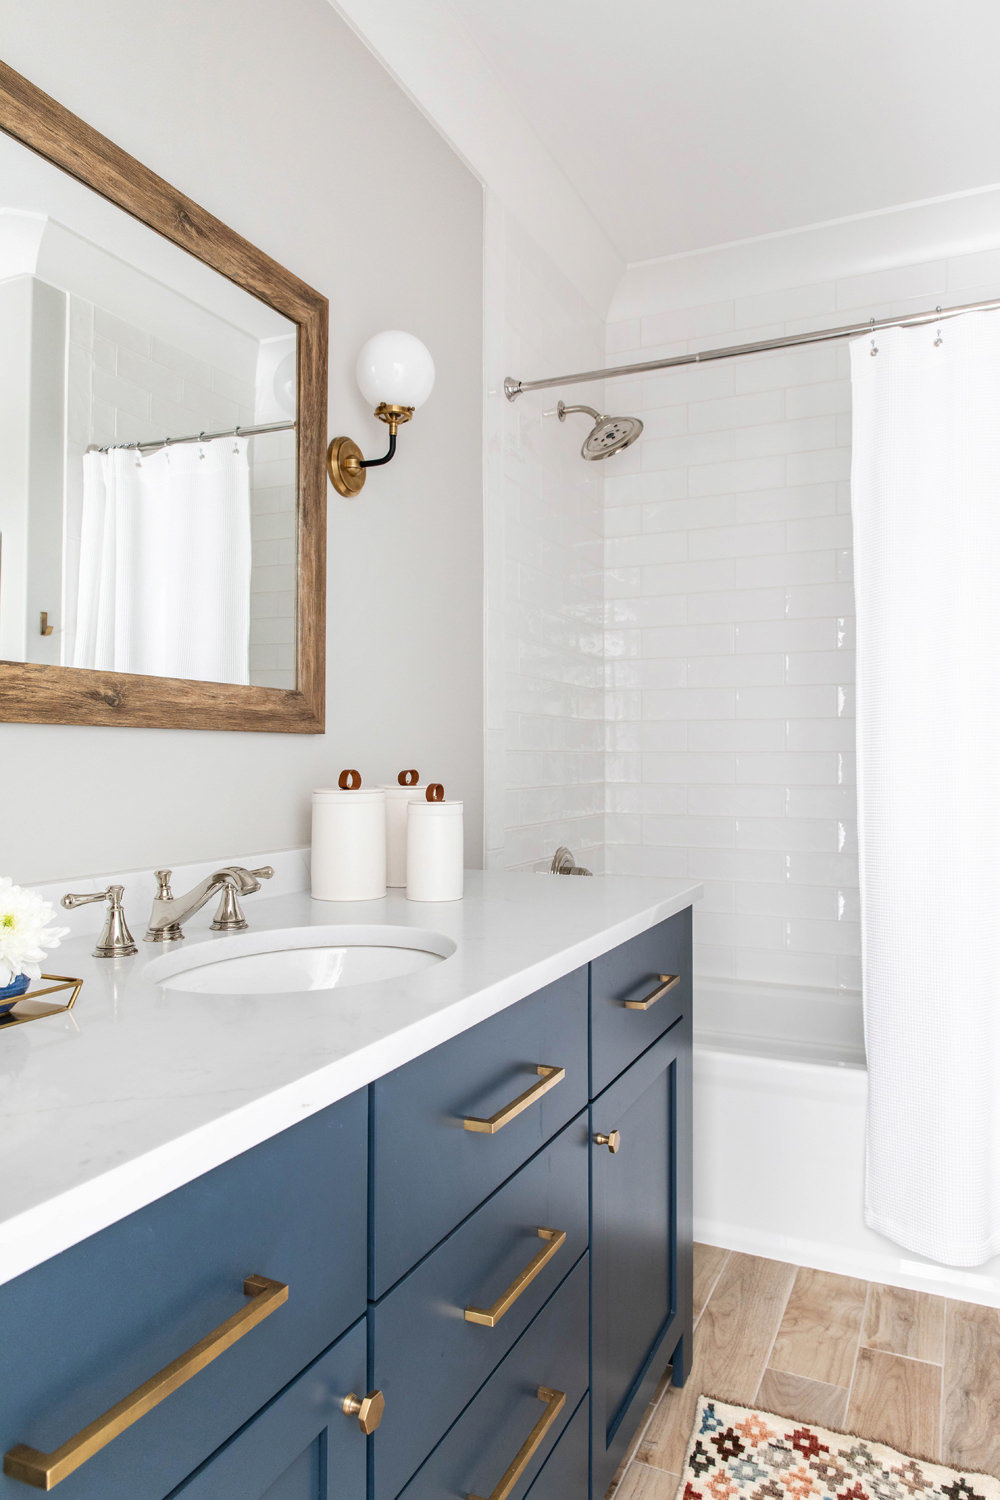 Benjamin-Moore-Blue-Note-Vanity-with-Brass-Hardware-and-Circa-Lighting-Sconce-2